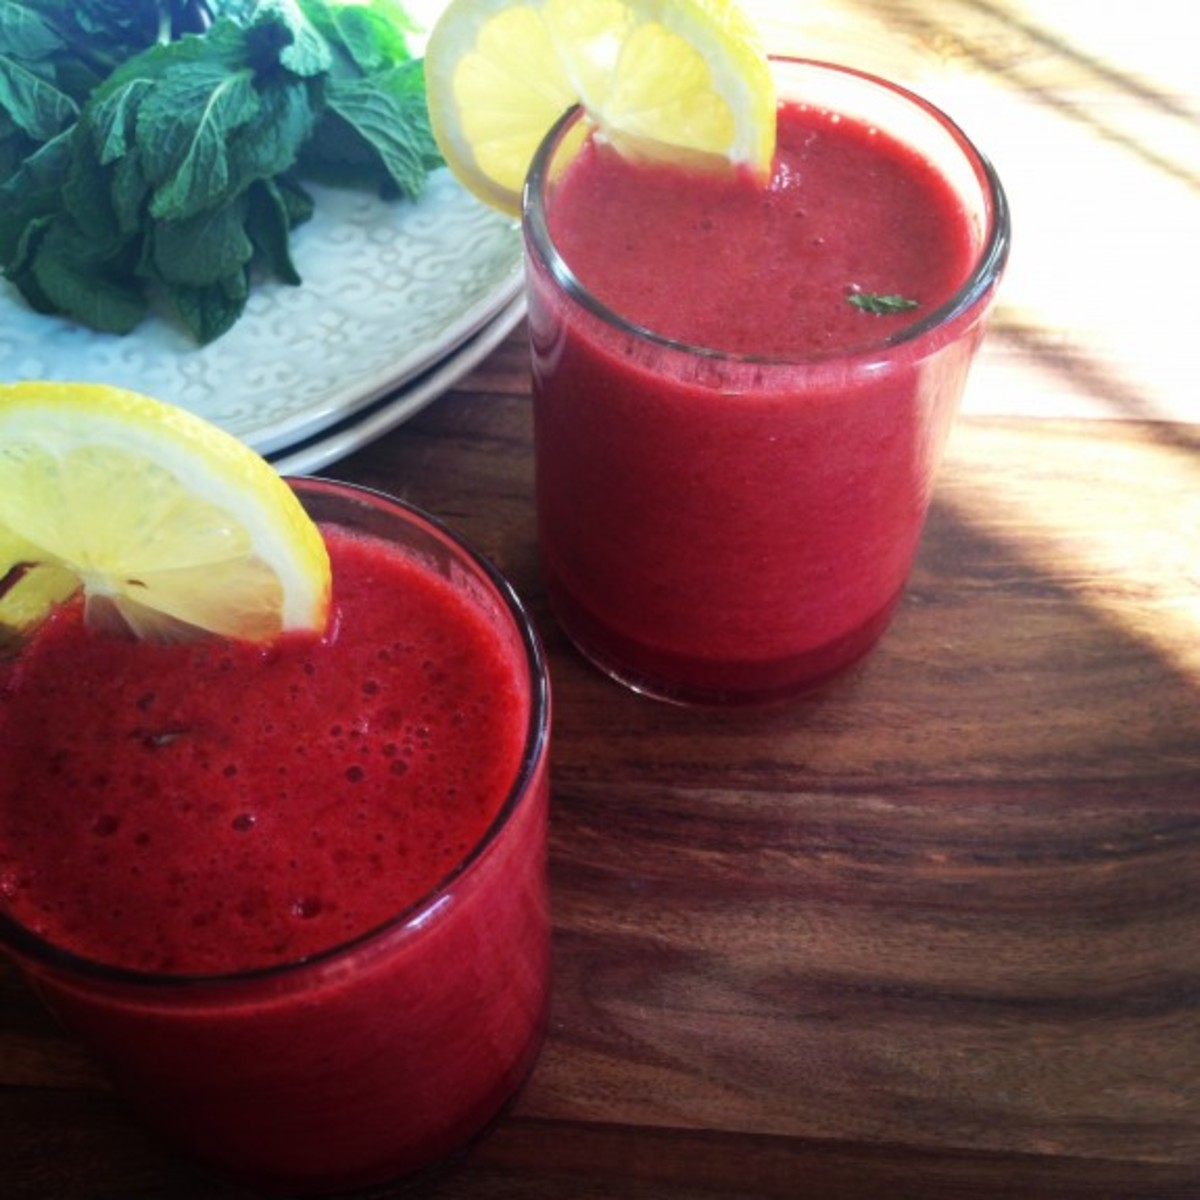 http://www.wellandgoodnyc.com/2014/04/01/recipe-raspberry-lemonade-spring-cleanse-smoothie/?utm_source=OrganicAuthority&utm_medium=Social&utm_campaign=wgOA4